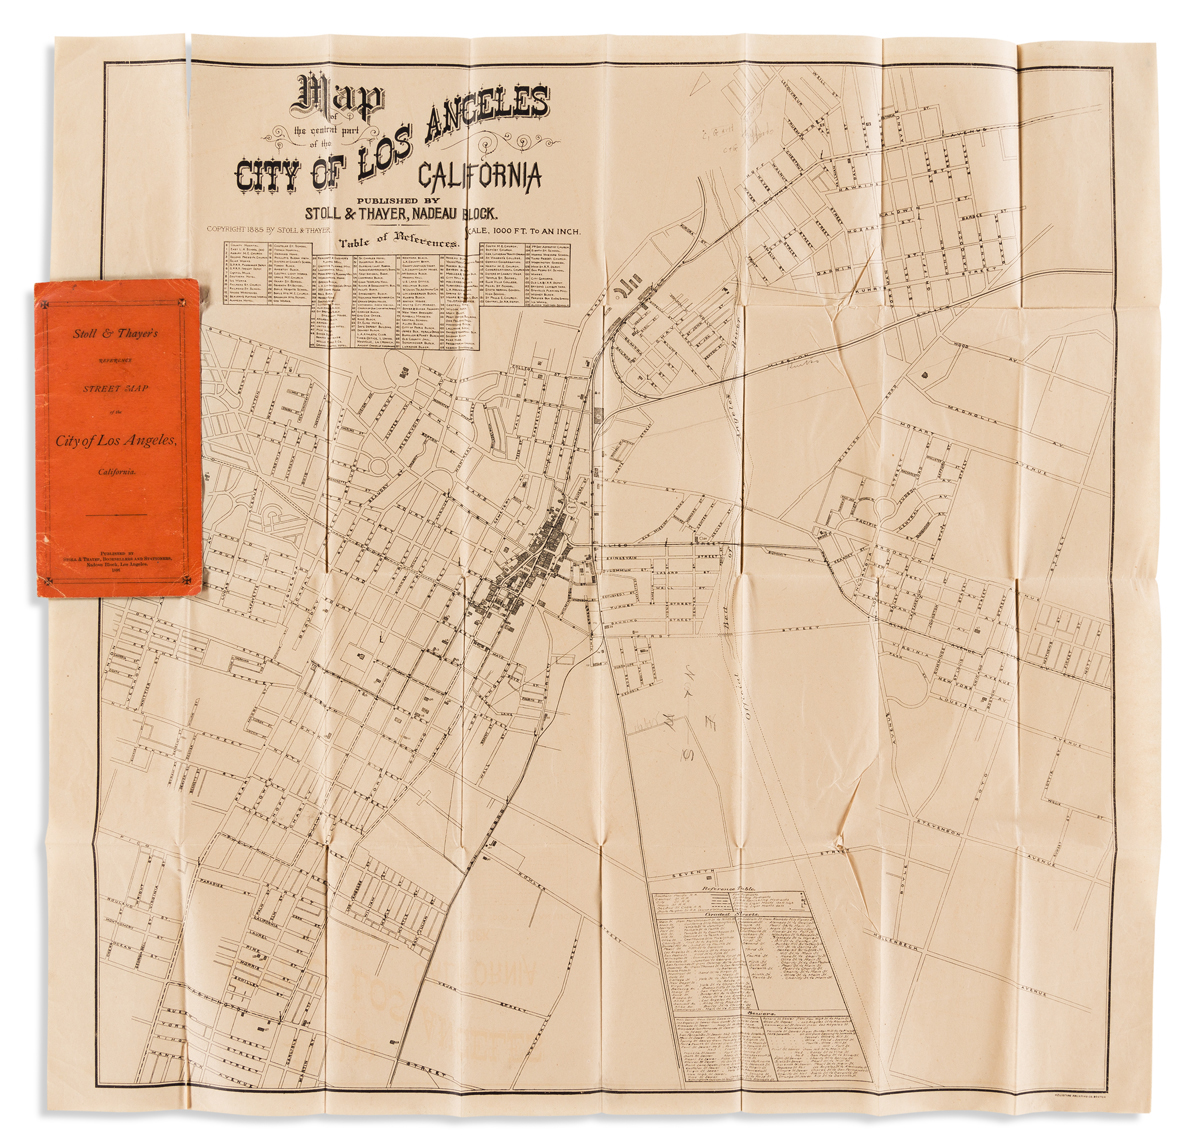 (CALIFORNIA.) Stoll, Simon; and J.S. Thayer. Map of the Central Part of the City of Los Angeles California.